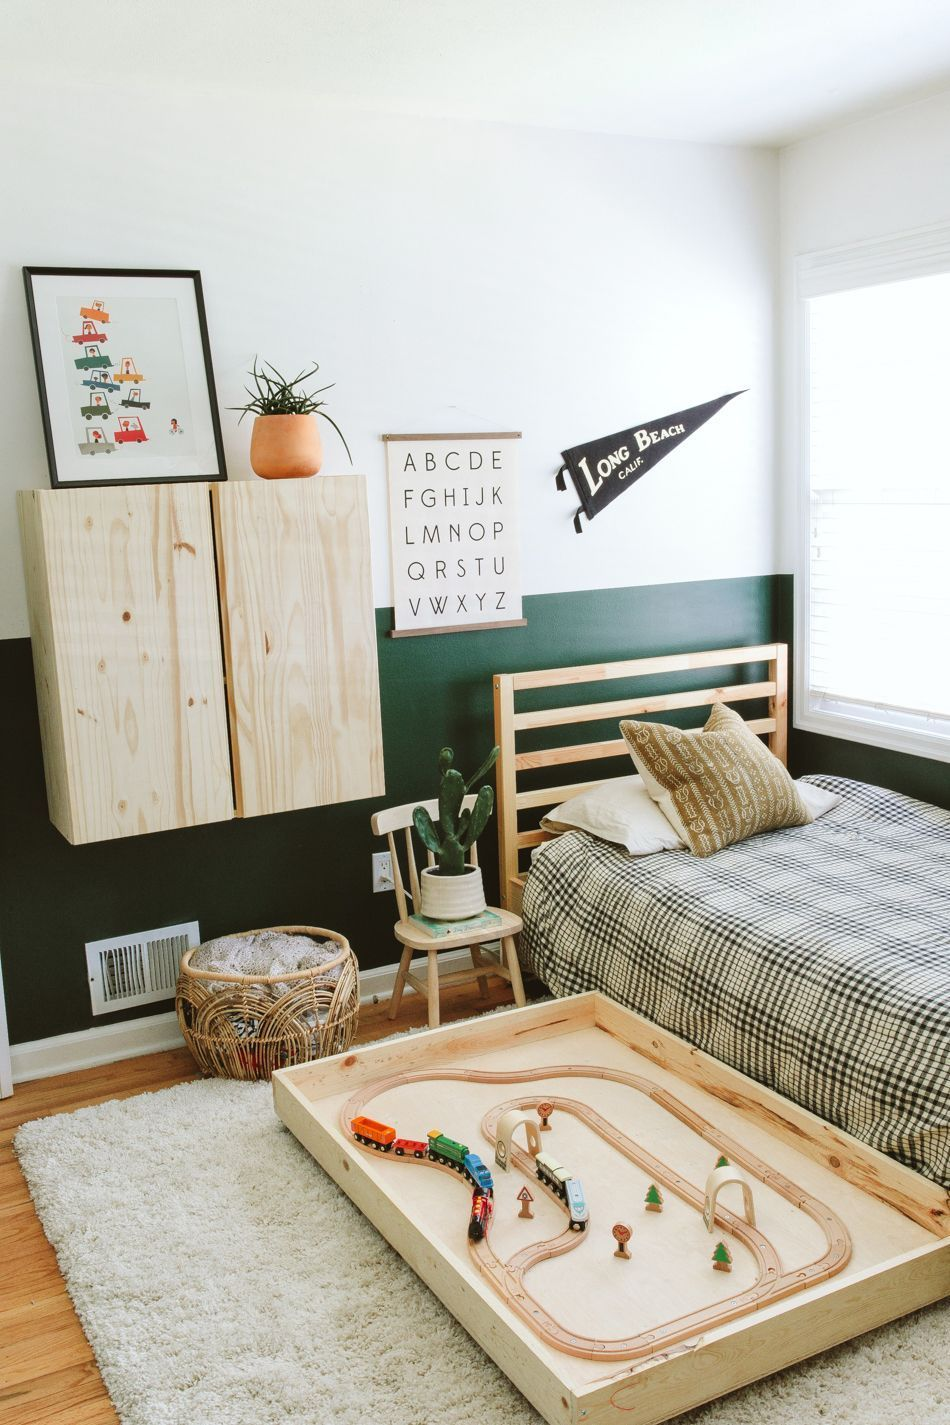 Astounding 16 Creative And Unique Playroom Ideas For Your Kids Https Fancyhouse Co 16 Creative And Unique Boy Bedroom Design Toddler Bedrooms Kid Room Decor